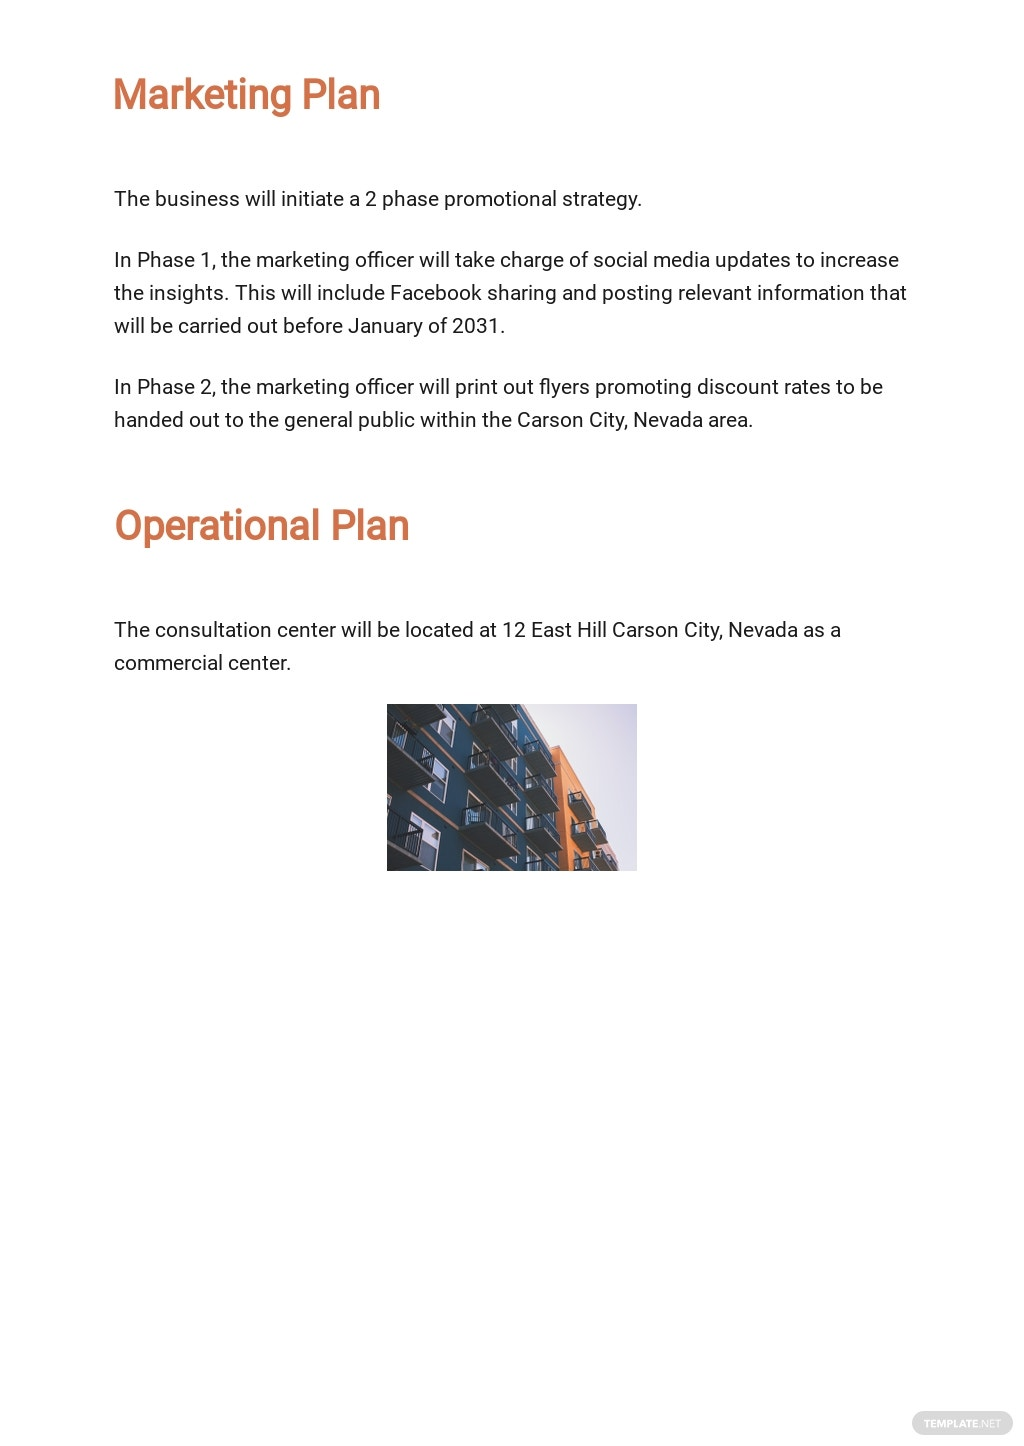 Human Resources Consulting Business Plan Template 4.jpe